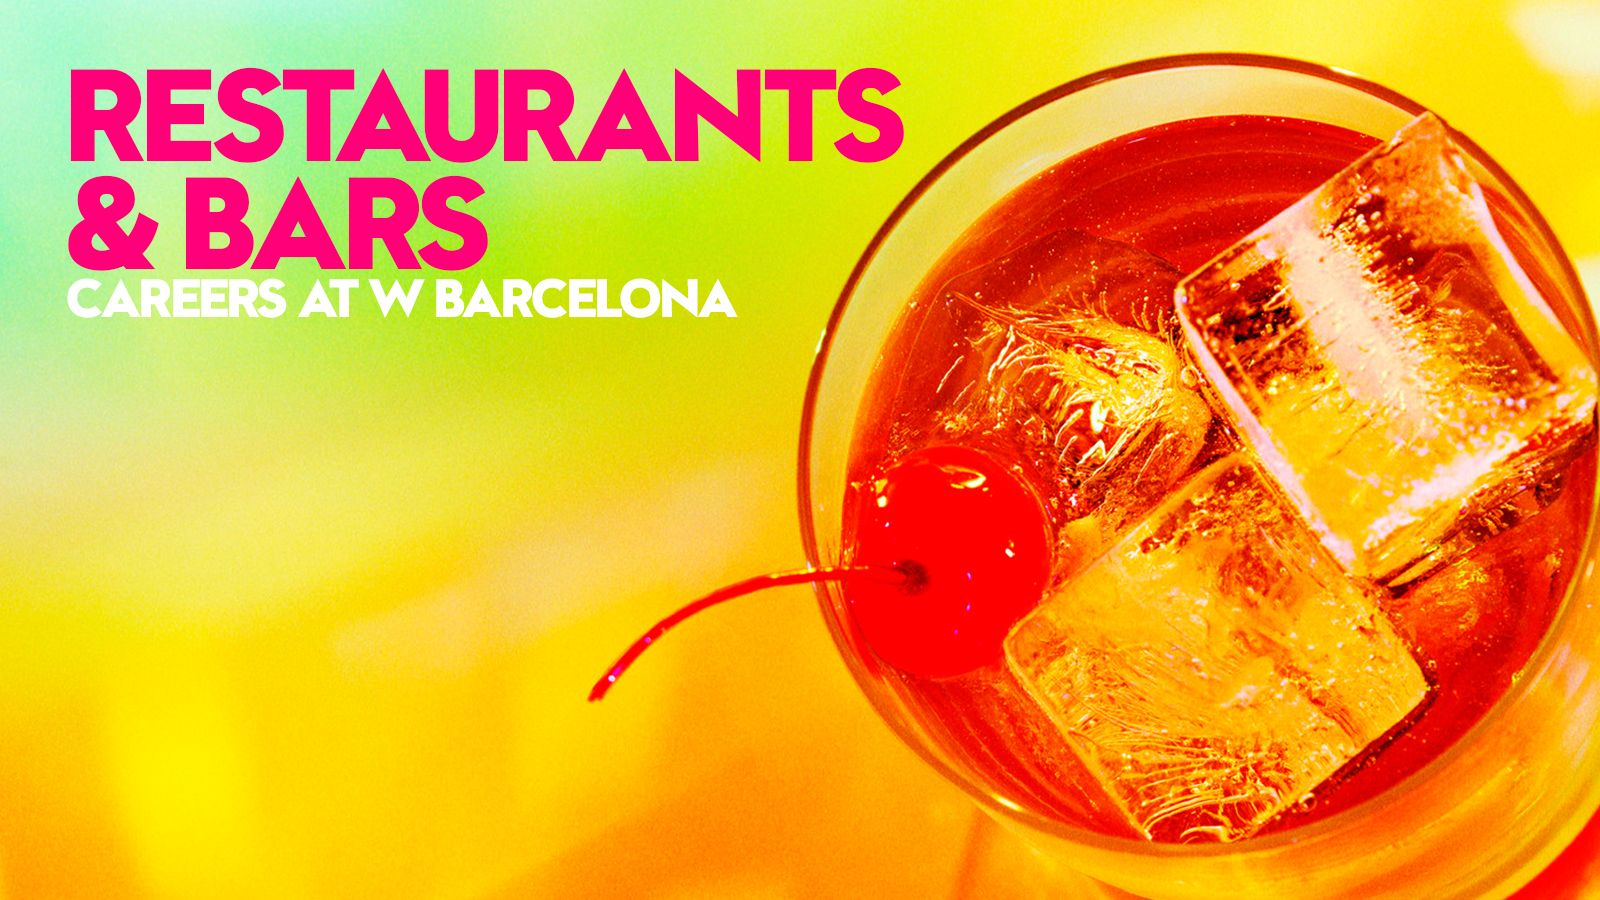 Restaurants & Bars | Careers at W Barcelona